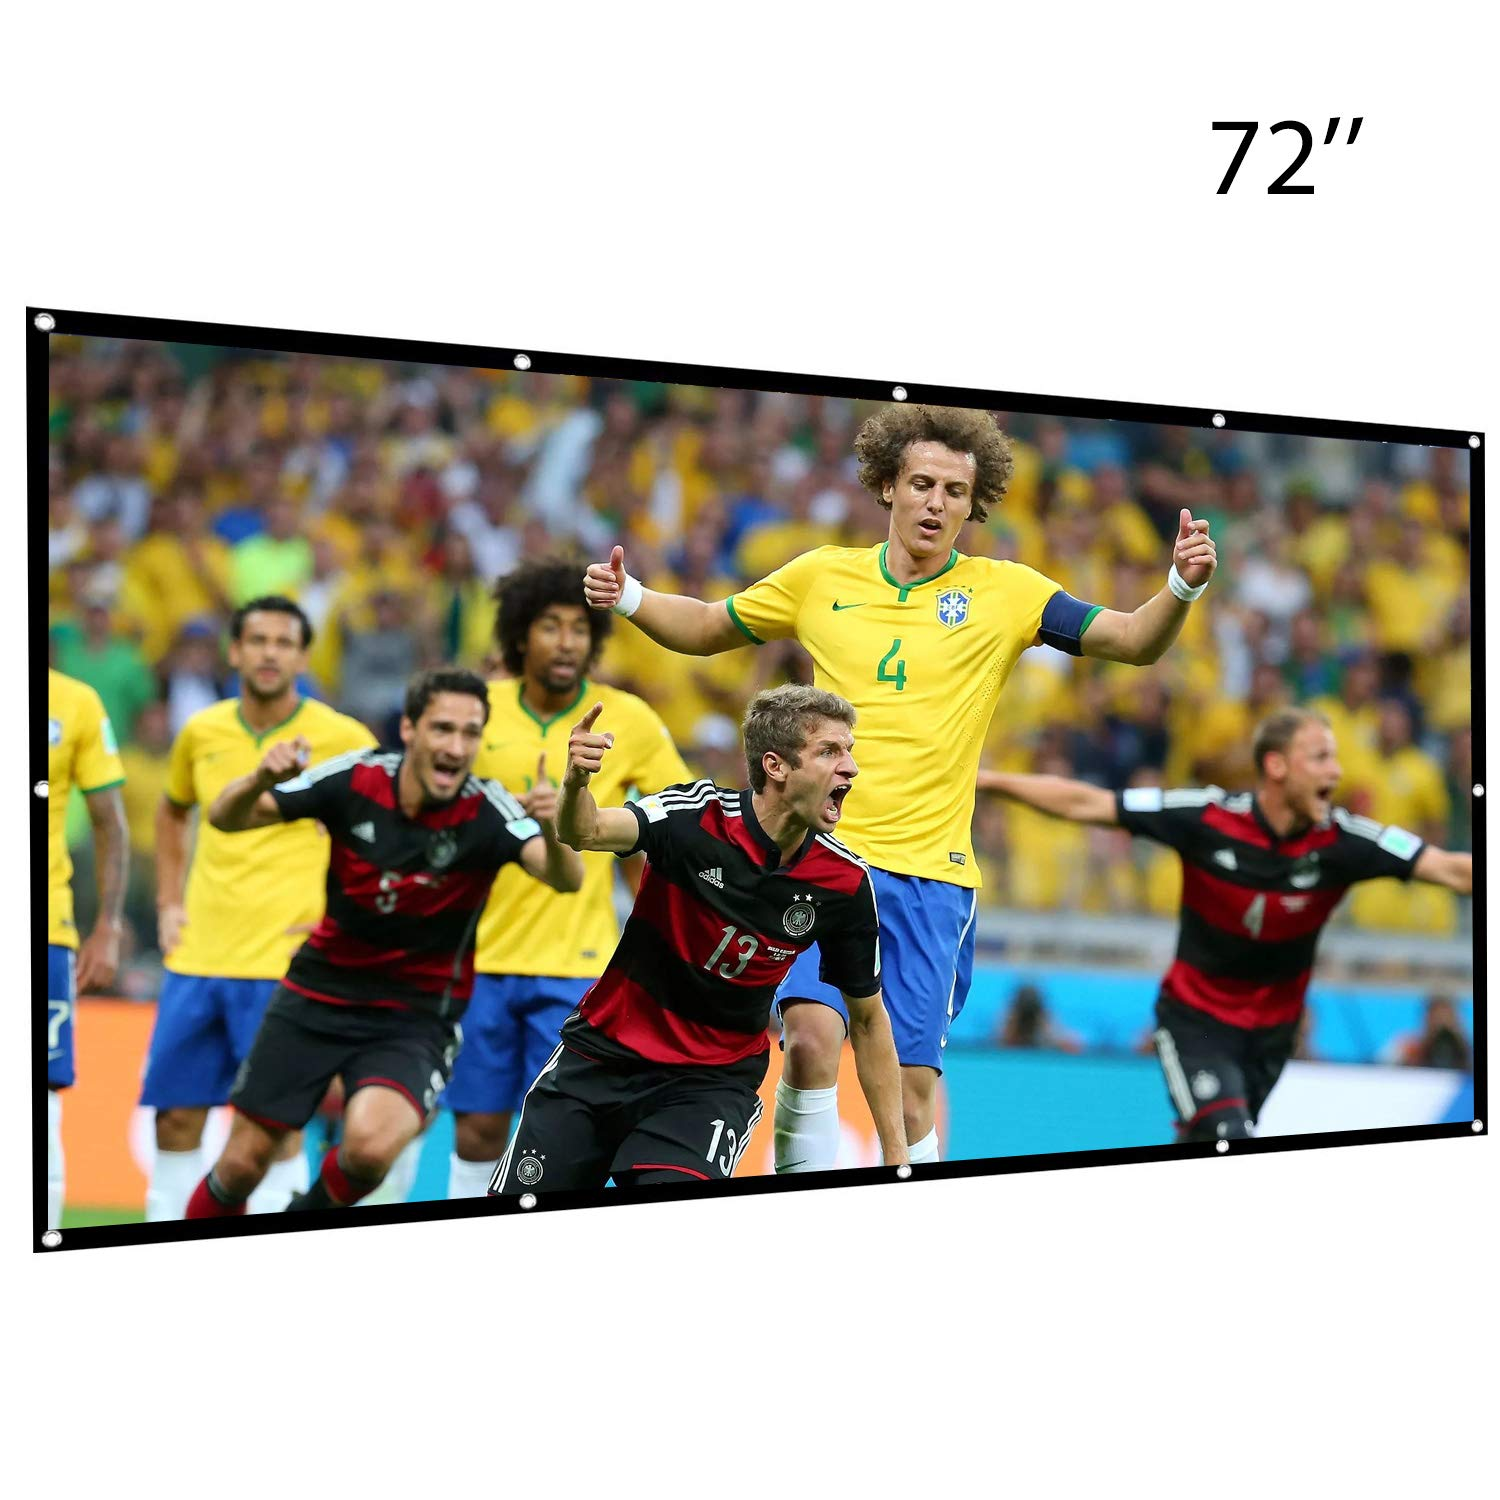 Umiwe 72 Inch Projection Screen-16:9 HD Portable Projector Movies Screen Foldable Anti-crease Wall Mounted with Hooks for Home Theater Outdoor Indoor Support Double Sided Projection, 0.5 Lbs Only